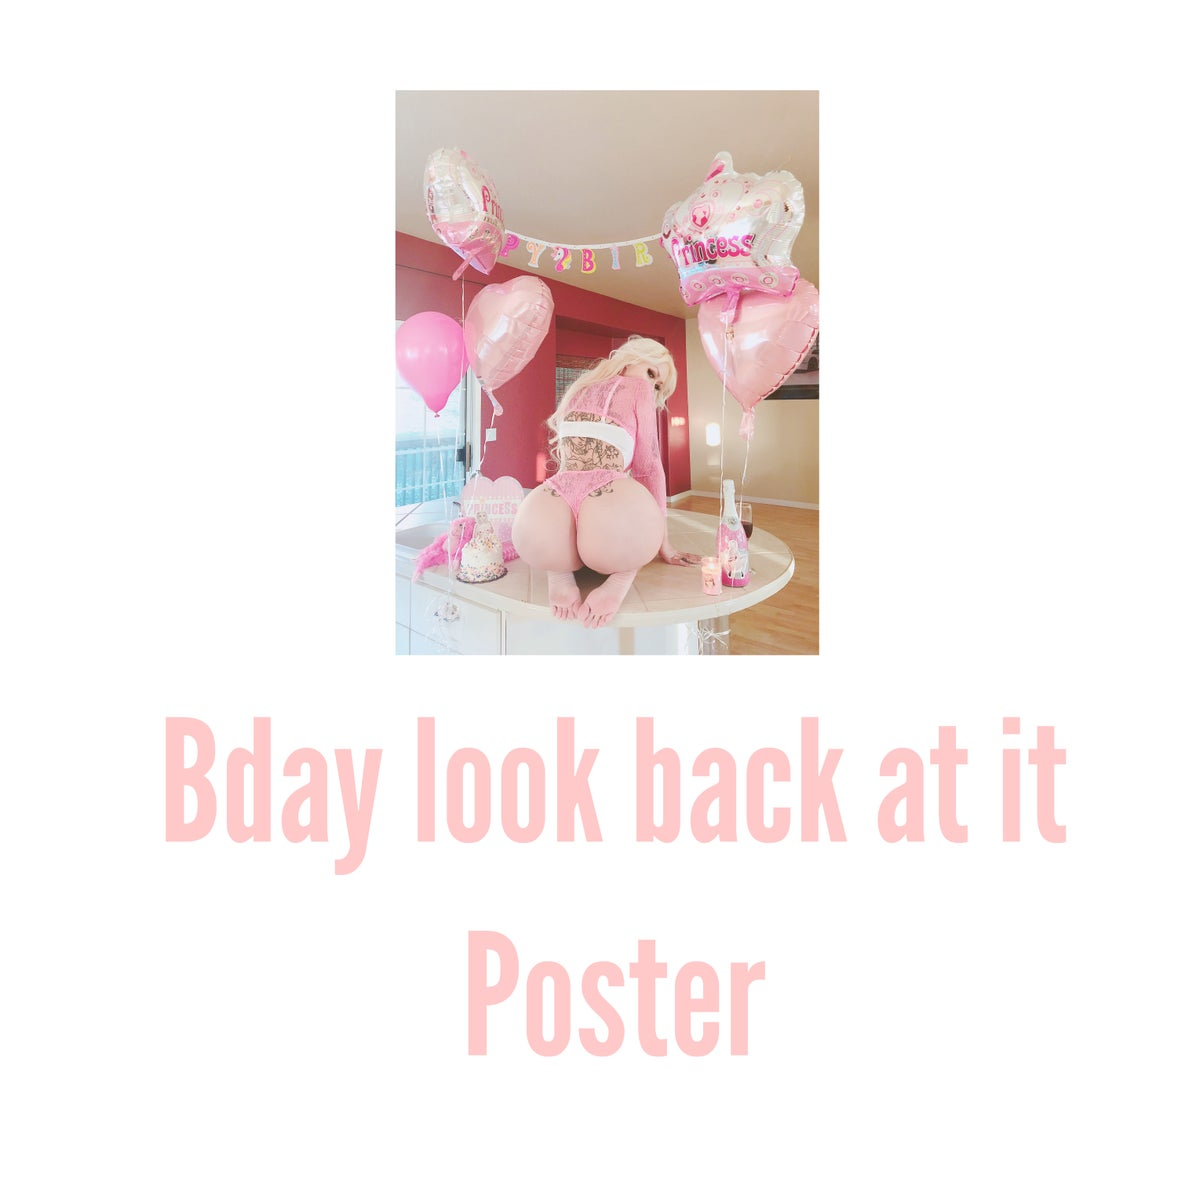 Image of Look back at it poster